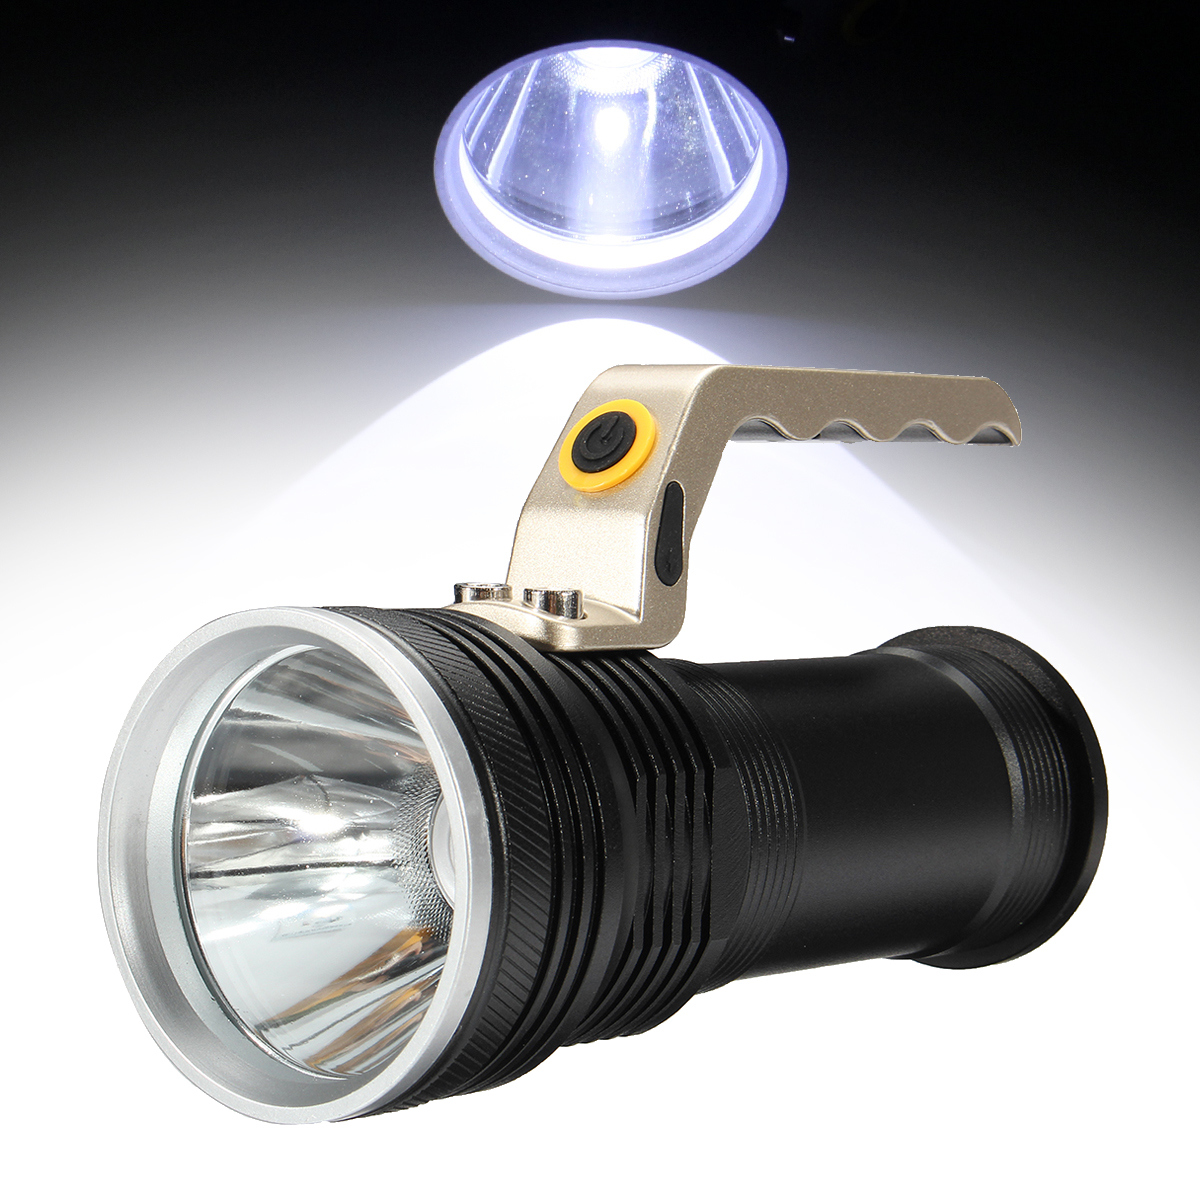 Rechargeable Powerful LED Flashlight Torch Light Lamp Lantern Portable Fishing Light 18650 Battery Camping Torch 16t6 super powerful flashlight torch lamp led flash light 38000lm waterproof hunting lamp lights with rechargeable 18650 battery